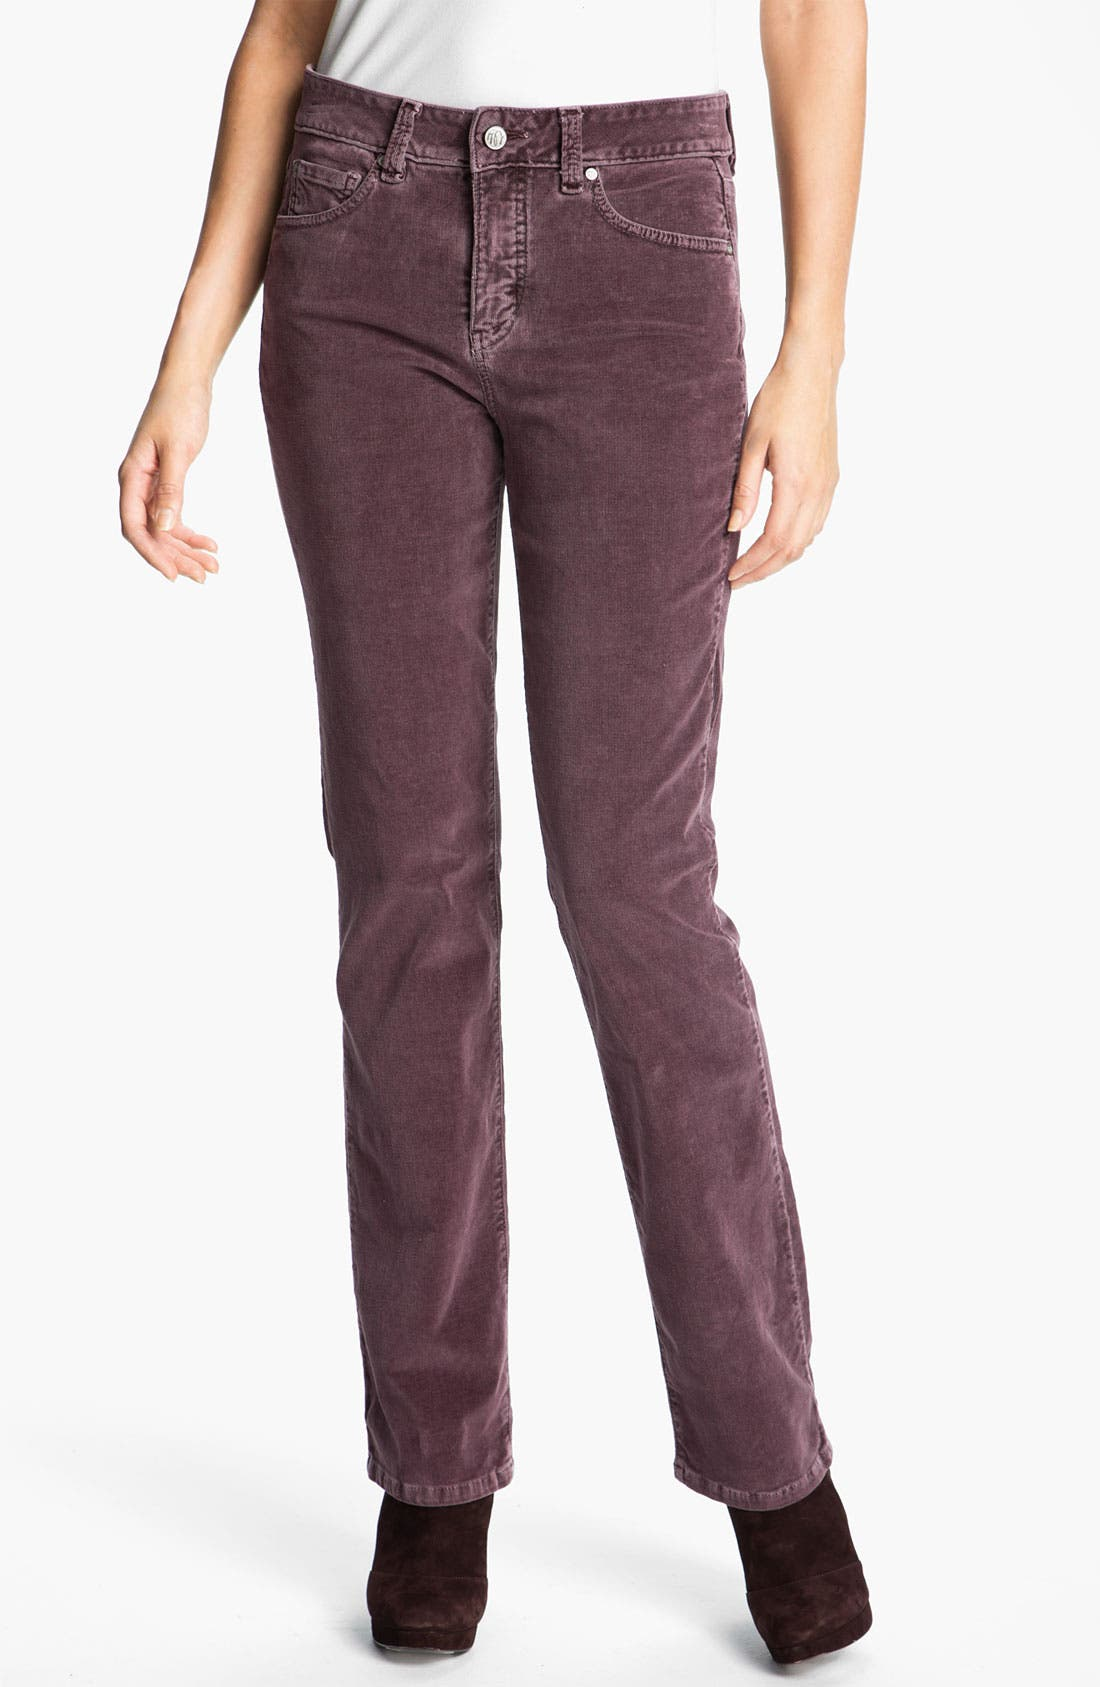 Alternate Image 1 Selected - Miraclebody 'Katie' Straight Leg Stretch Corduroy Jeans